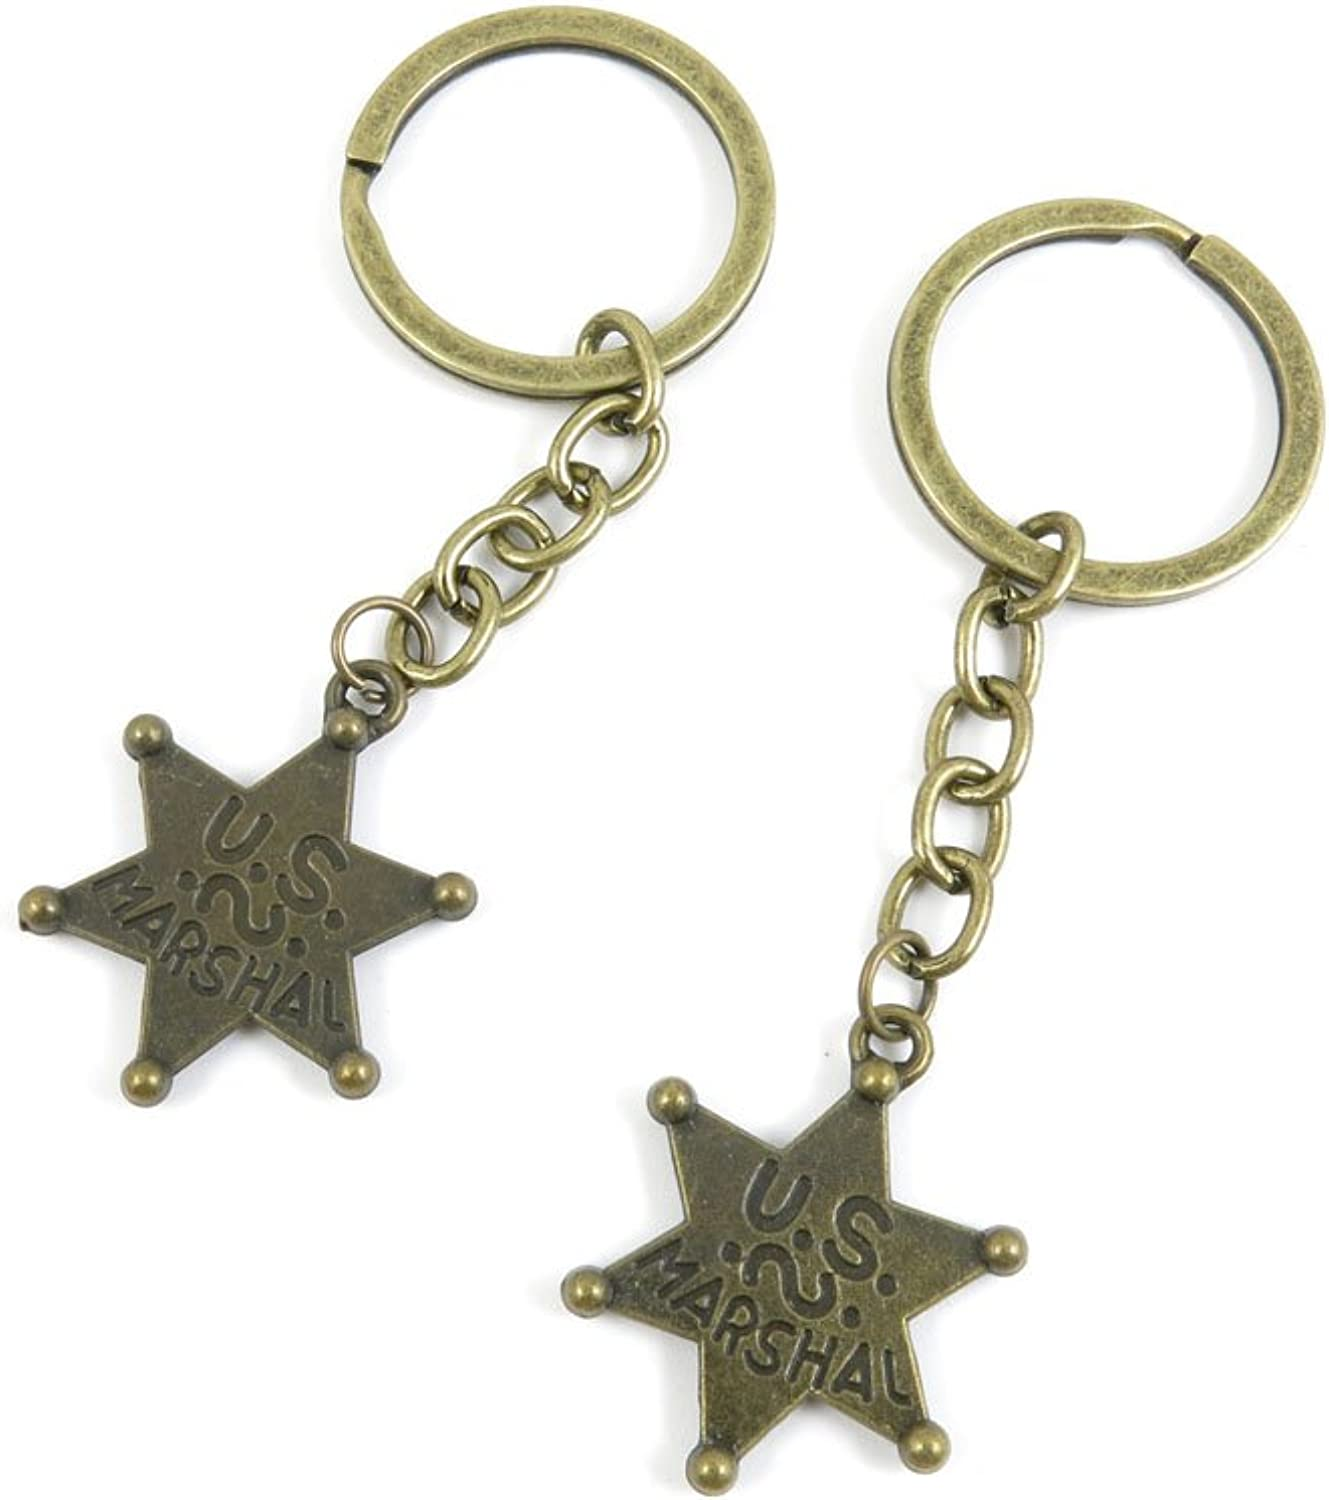 180 Pieces Fashion Jewelry Keyring Keychain Door Car Key Tag Ring Chain Supplier Supply Wholesale Bulk Lots E9JI1 US Marshal Star